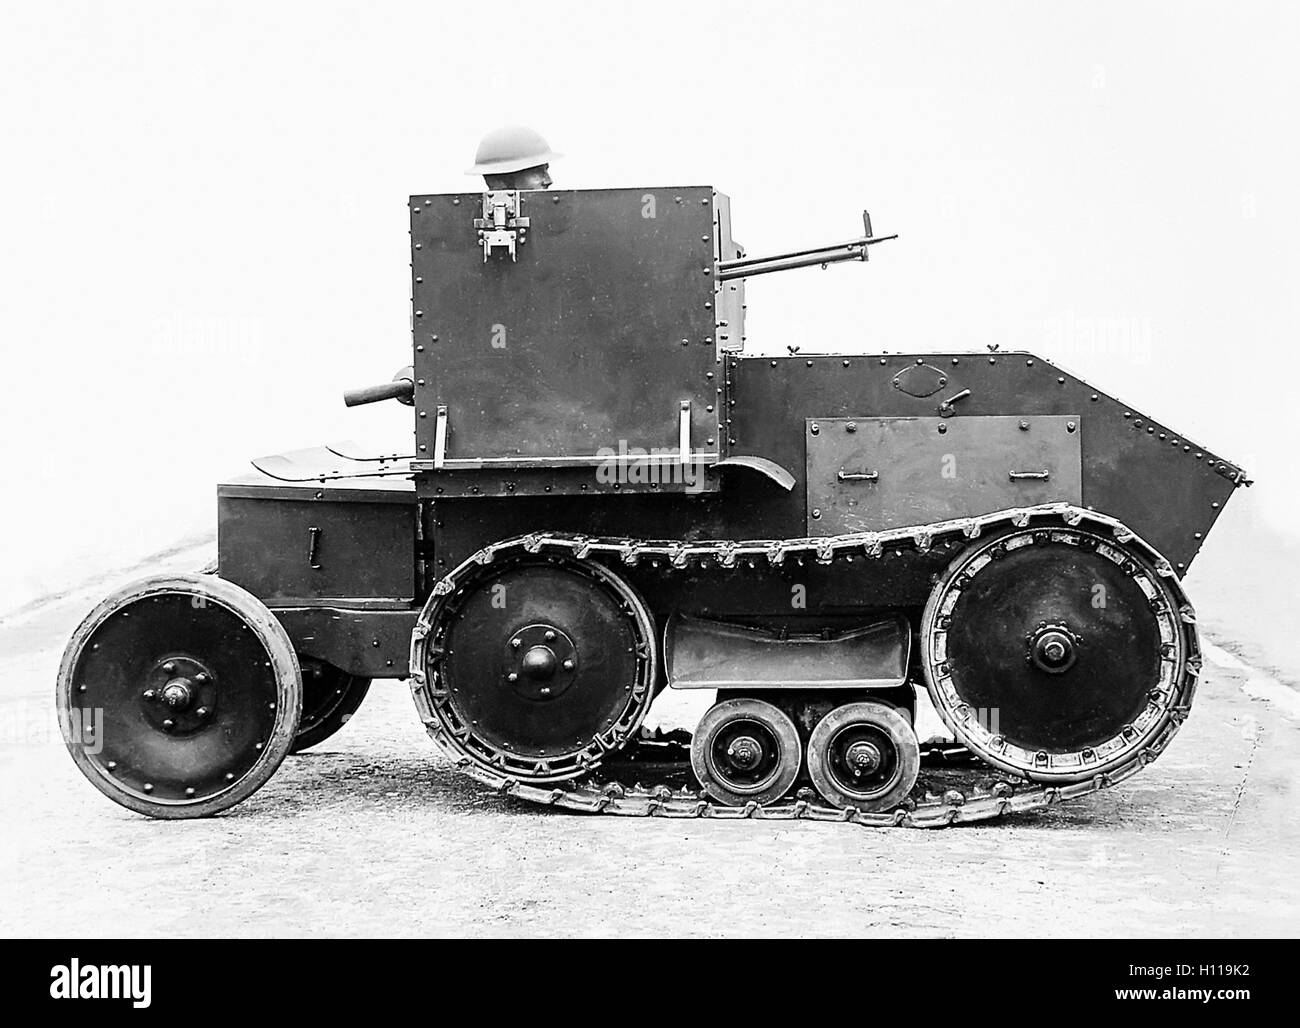 Morris-Martel tankette, British small one man tank designed for reconnaissance developed by Colonel Giffard Le Quesne - Stock Image